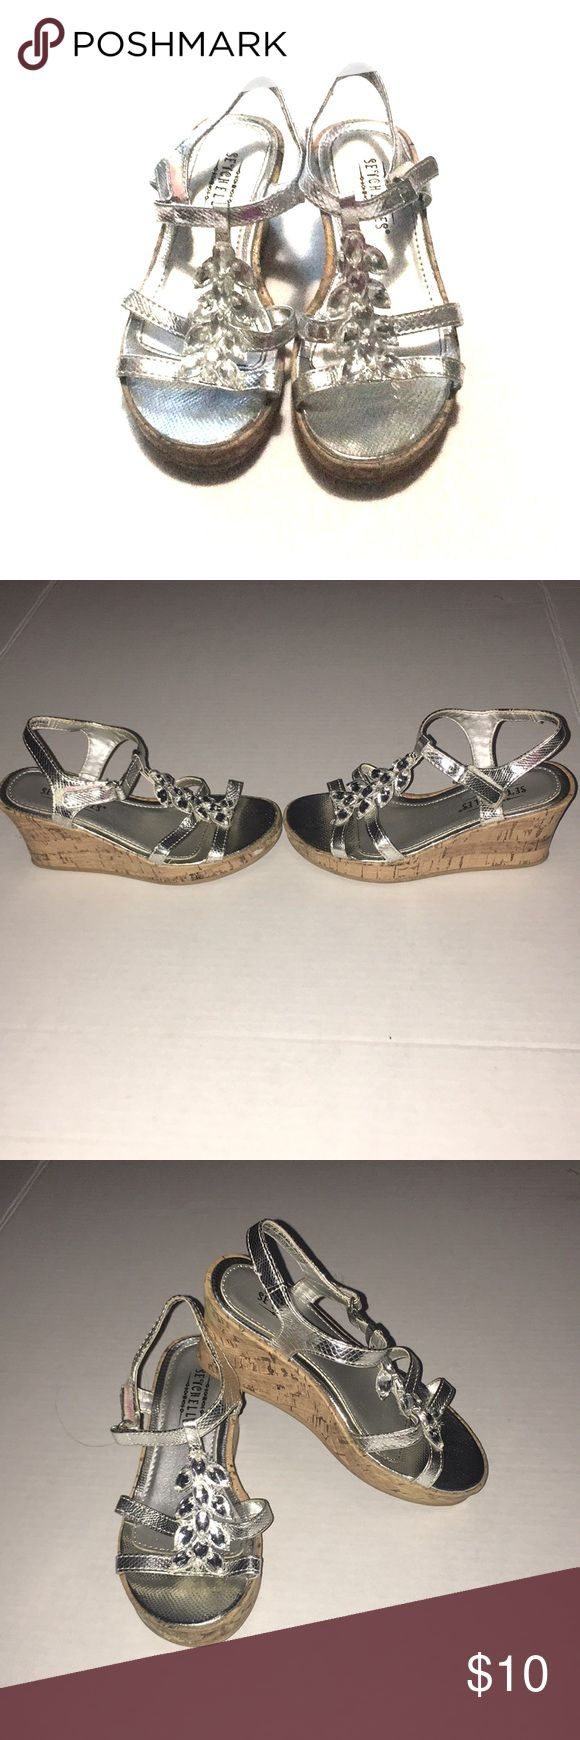 Silver Wedge Shoes Super chic silver wedges for girls size 11. Designed with jewels to compliment the shoe and give it more bling. Rarely worn, in good condition 😊 sevchelles Shoes Dress Shoes